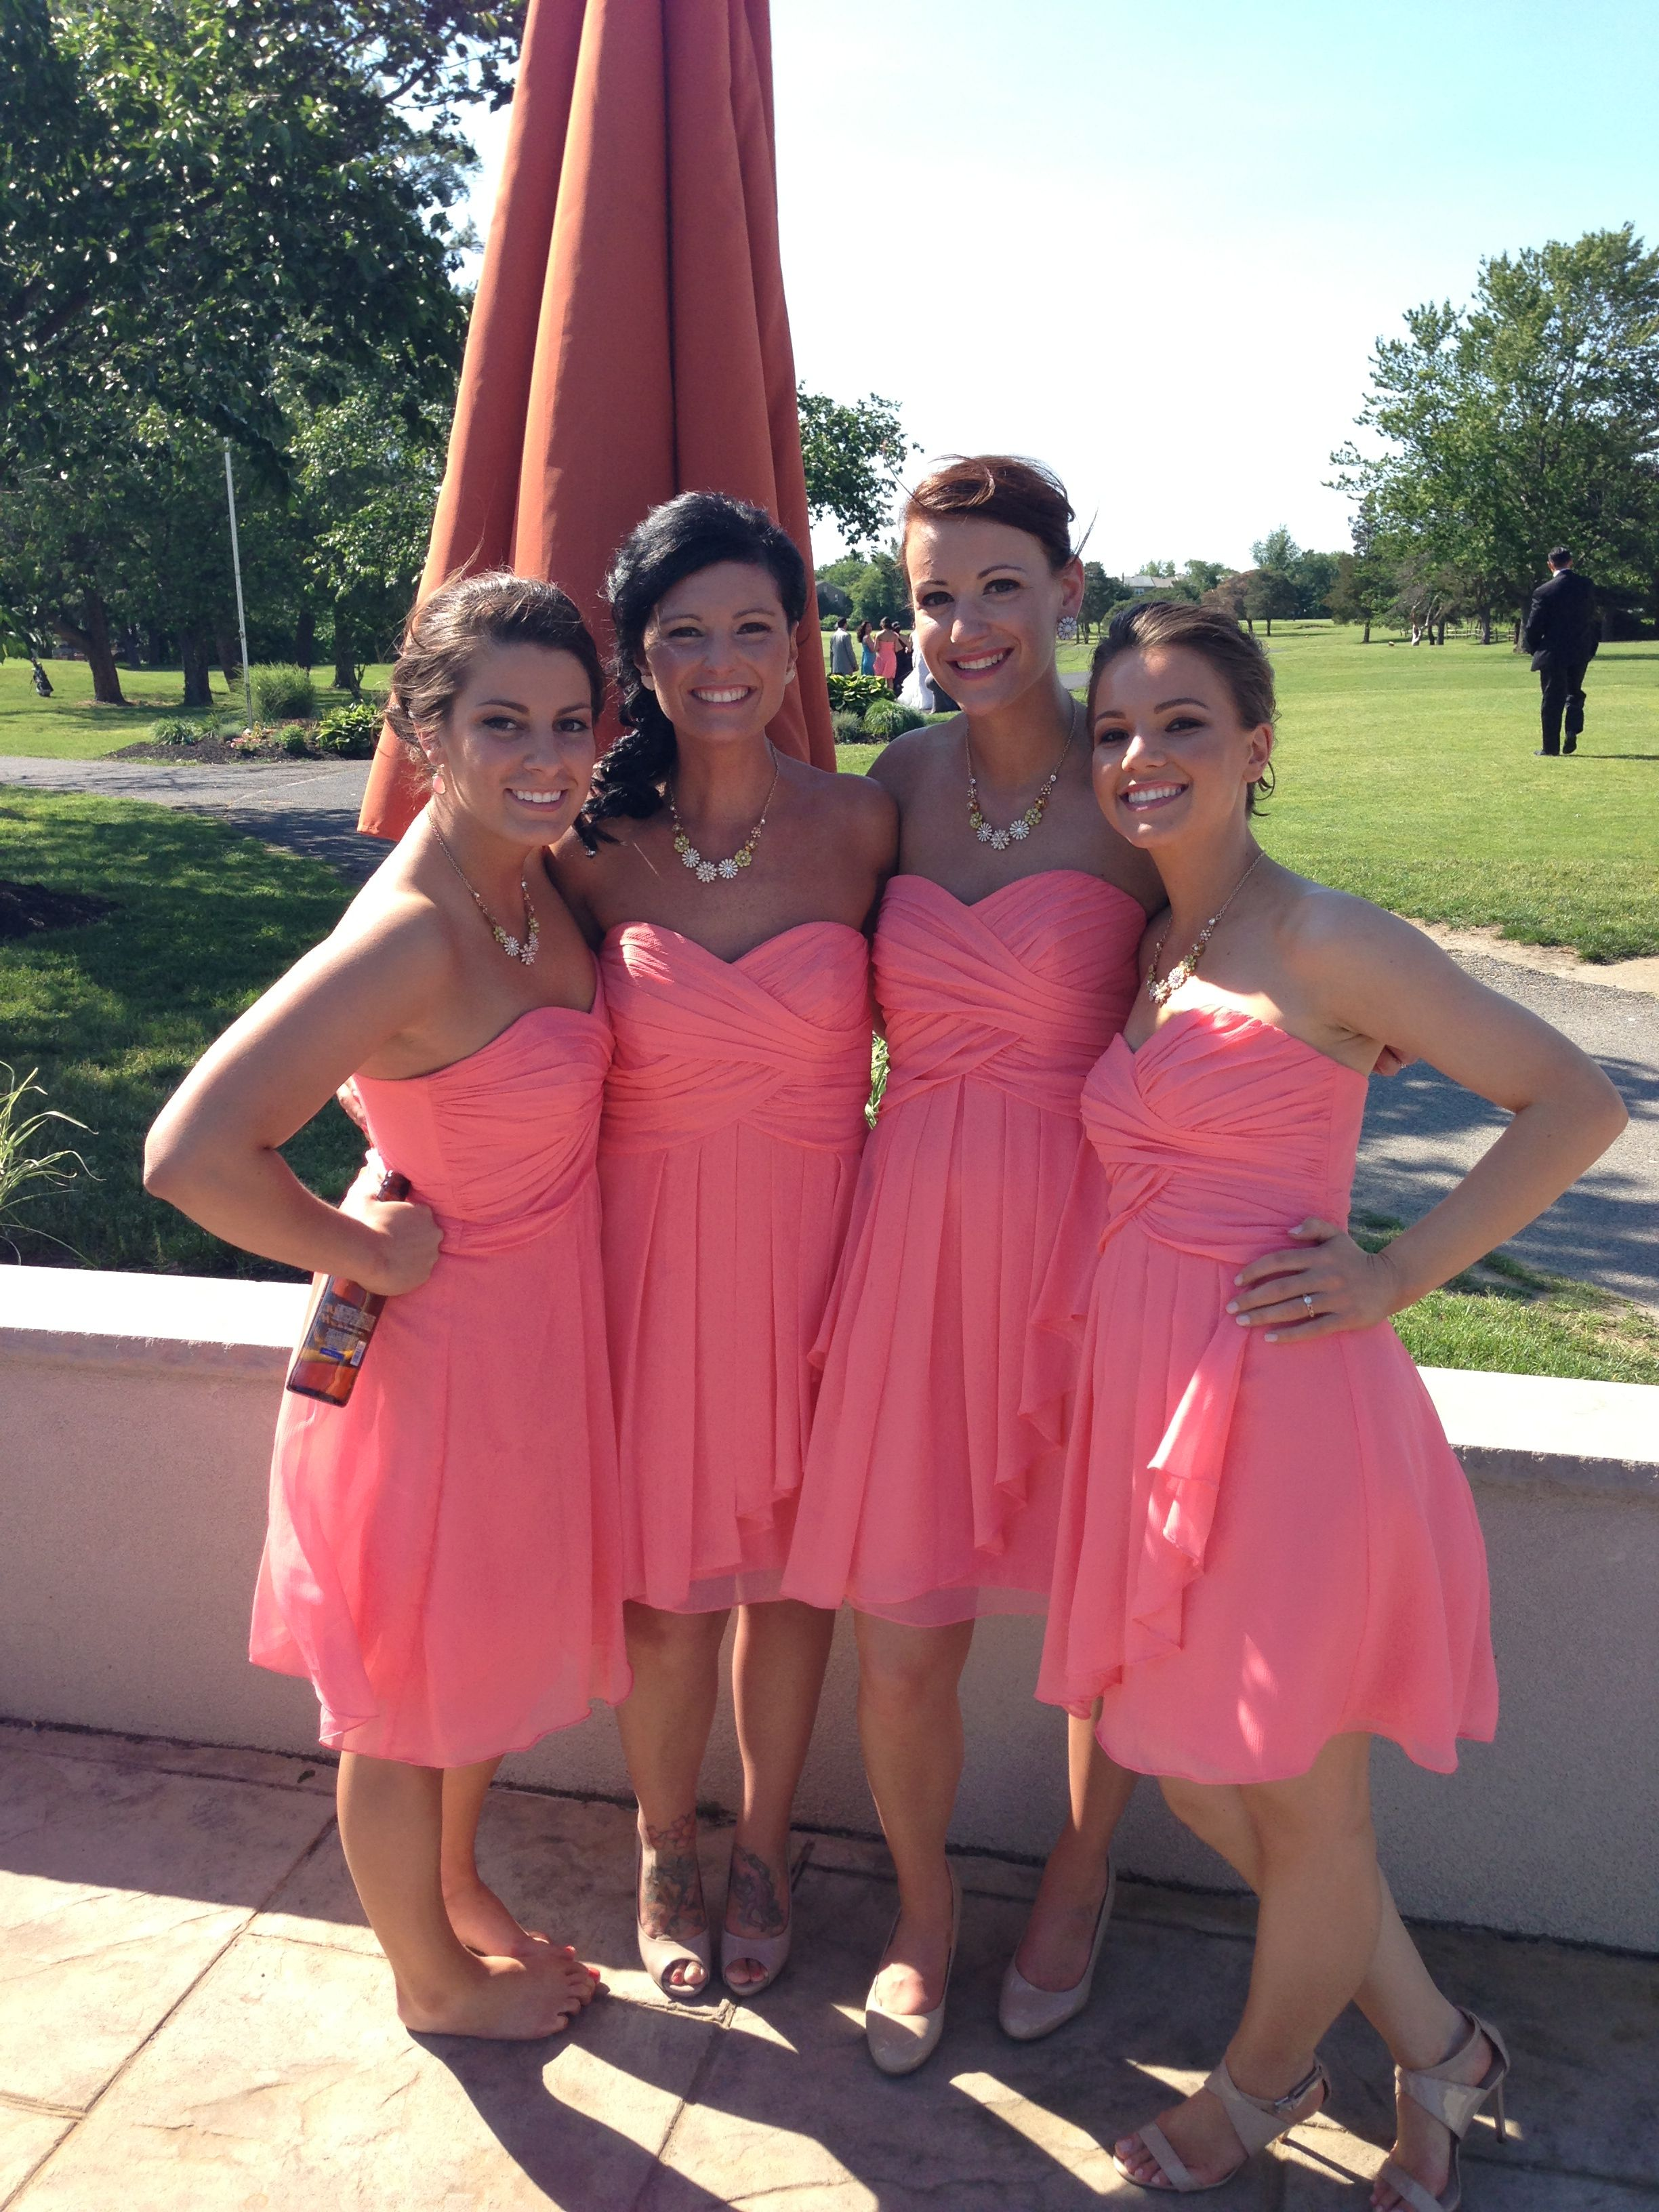 Casual photo at reception coral bridesmaids dresses how to